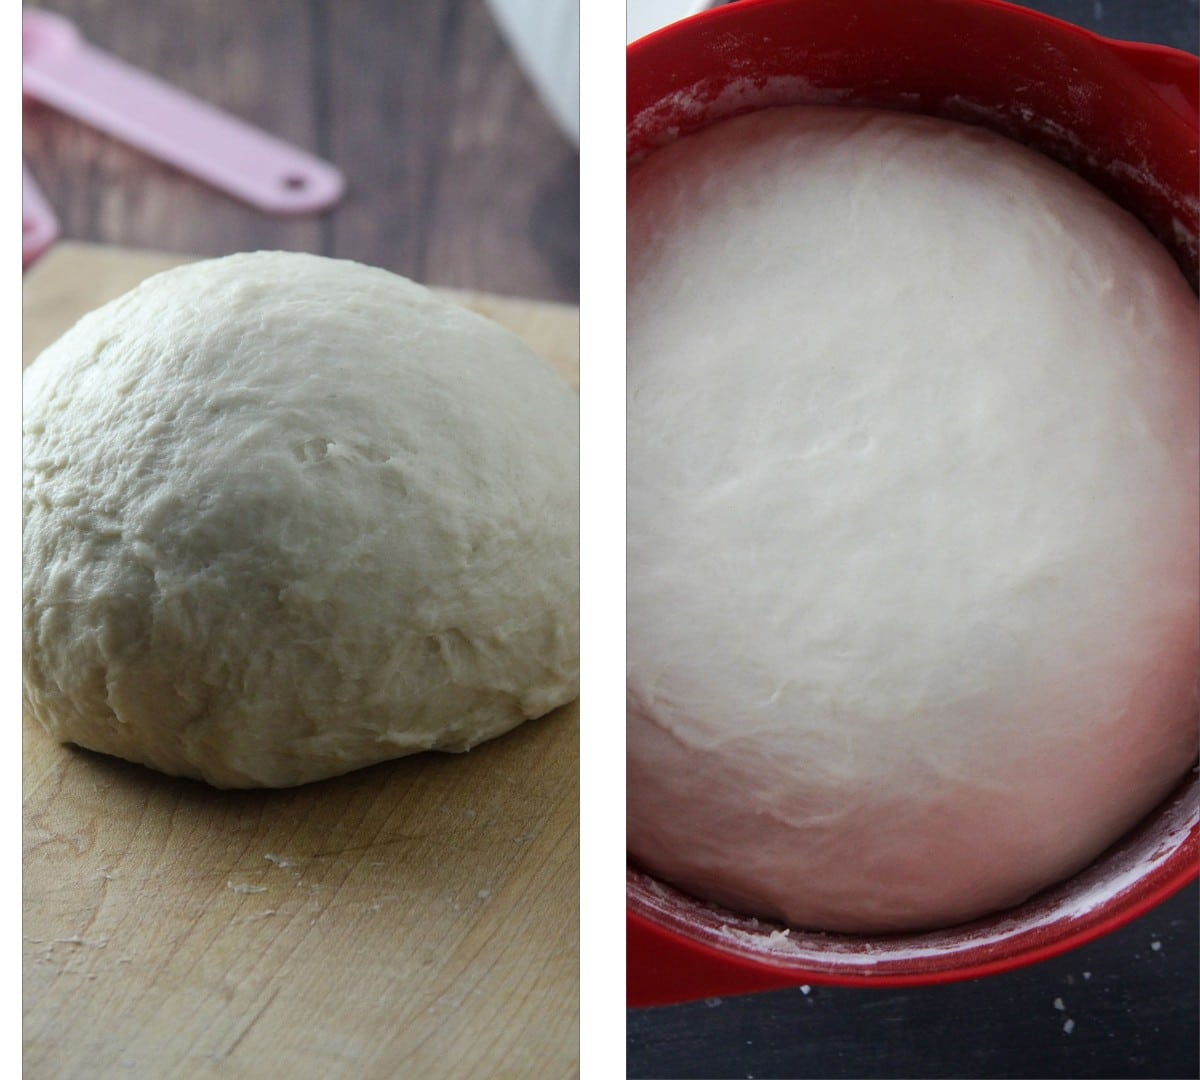 The kneaded dough, before and after rising.